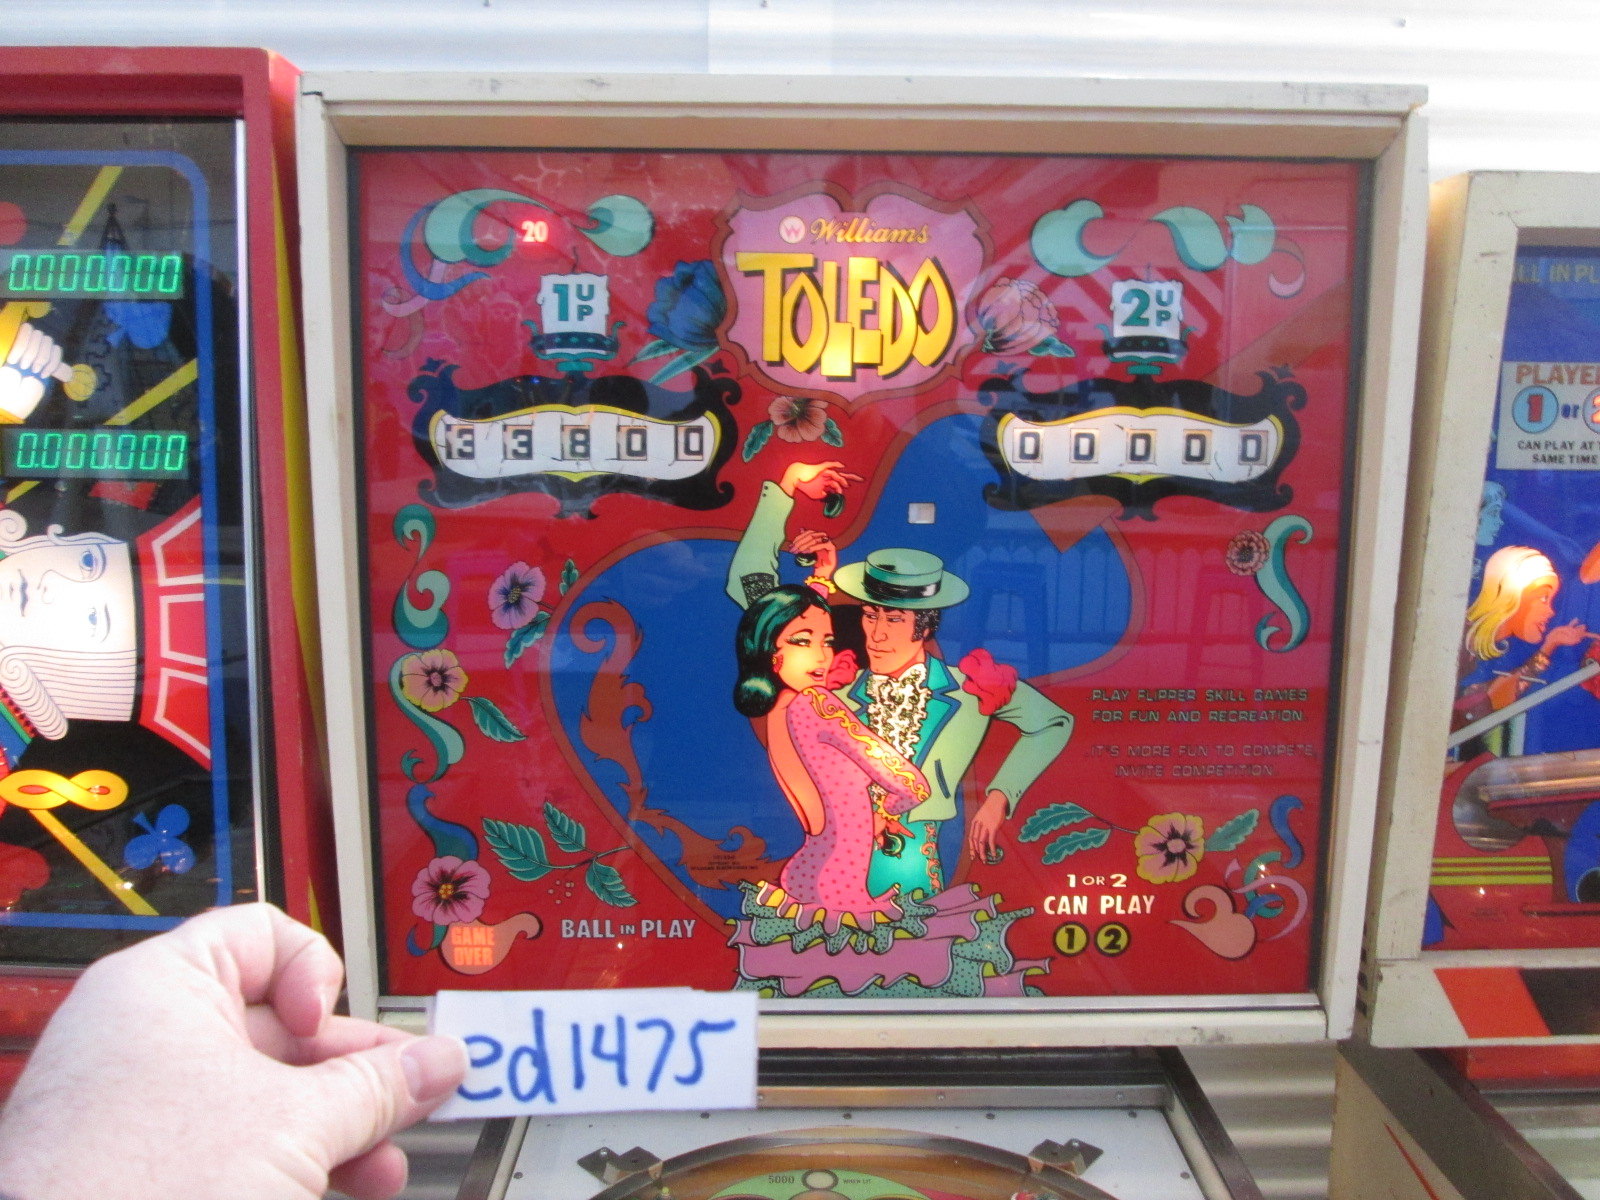 ed1475: Toledo (Pinball: 3 Balls) 33,800 points on 2017-05-19 16:23:05